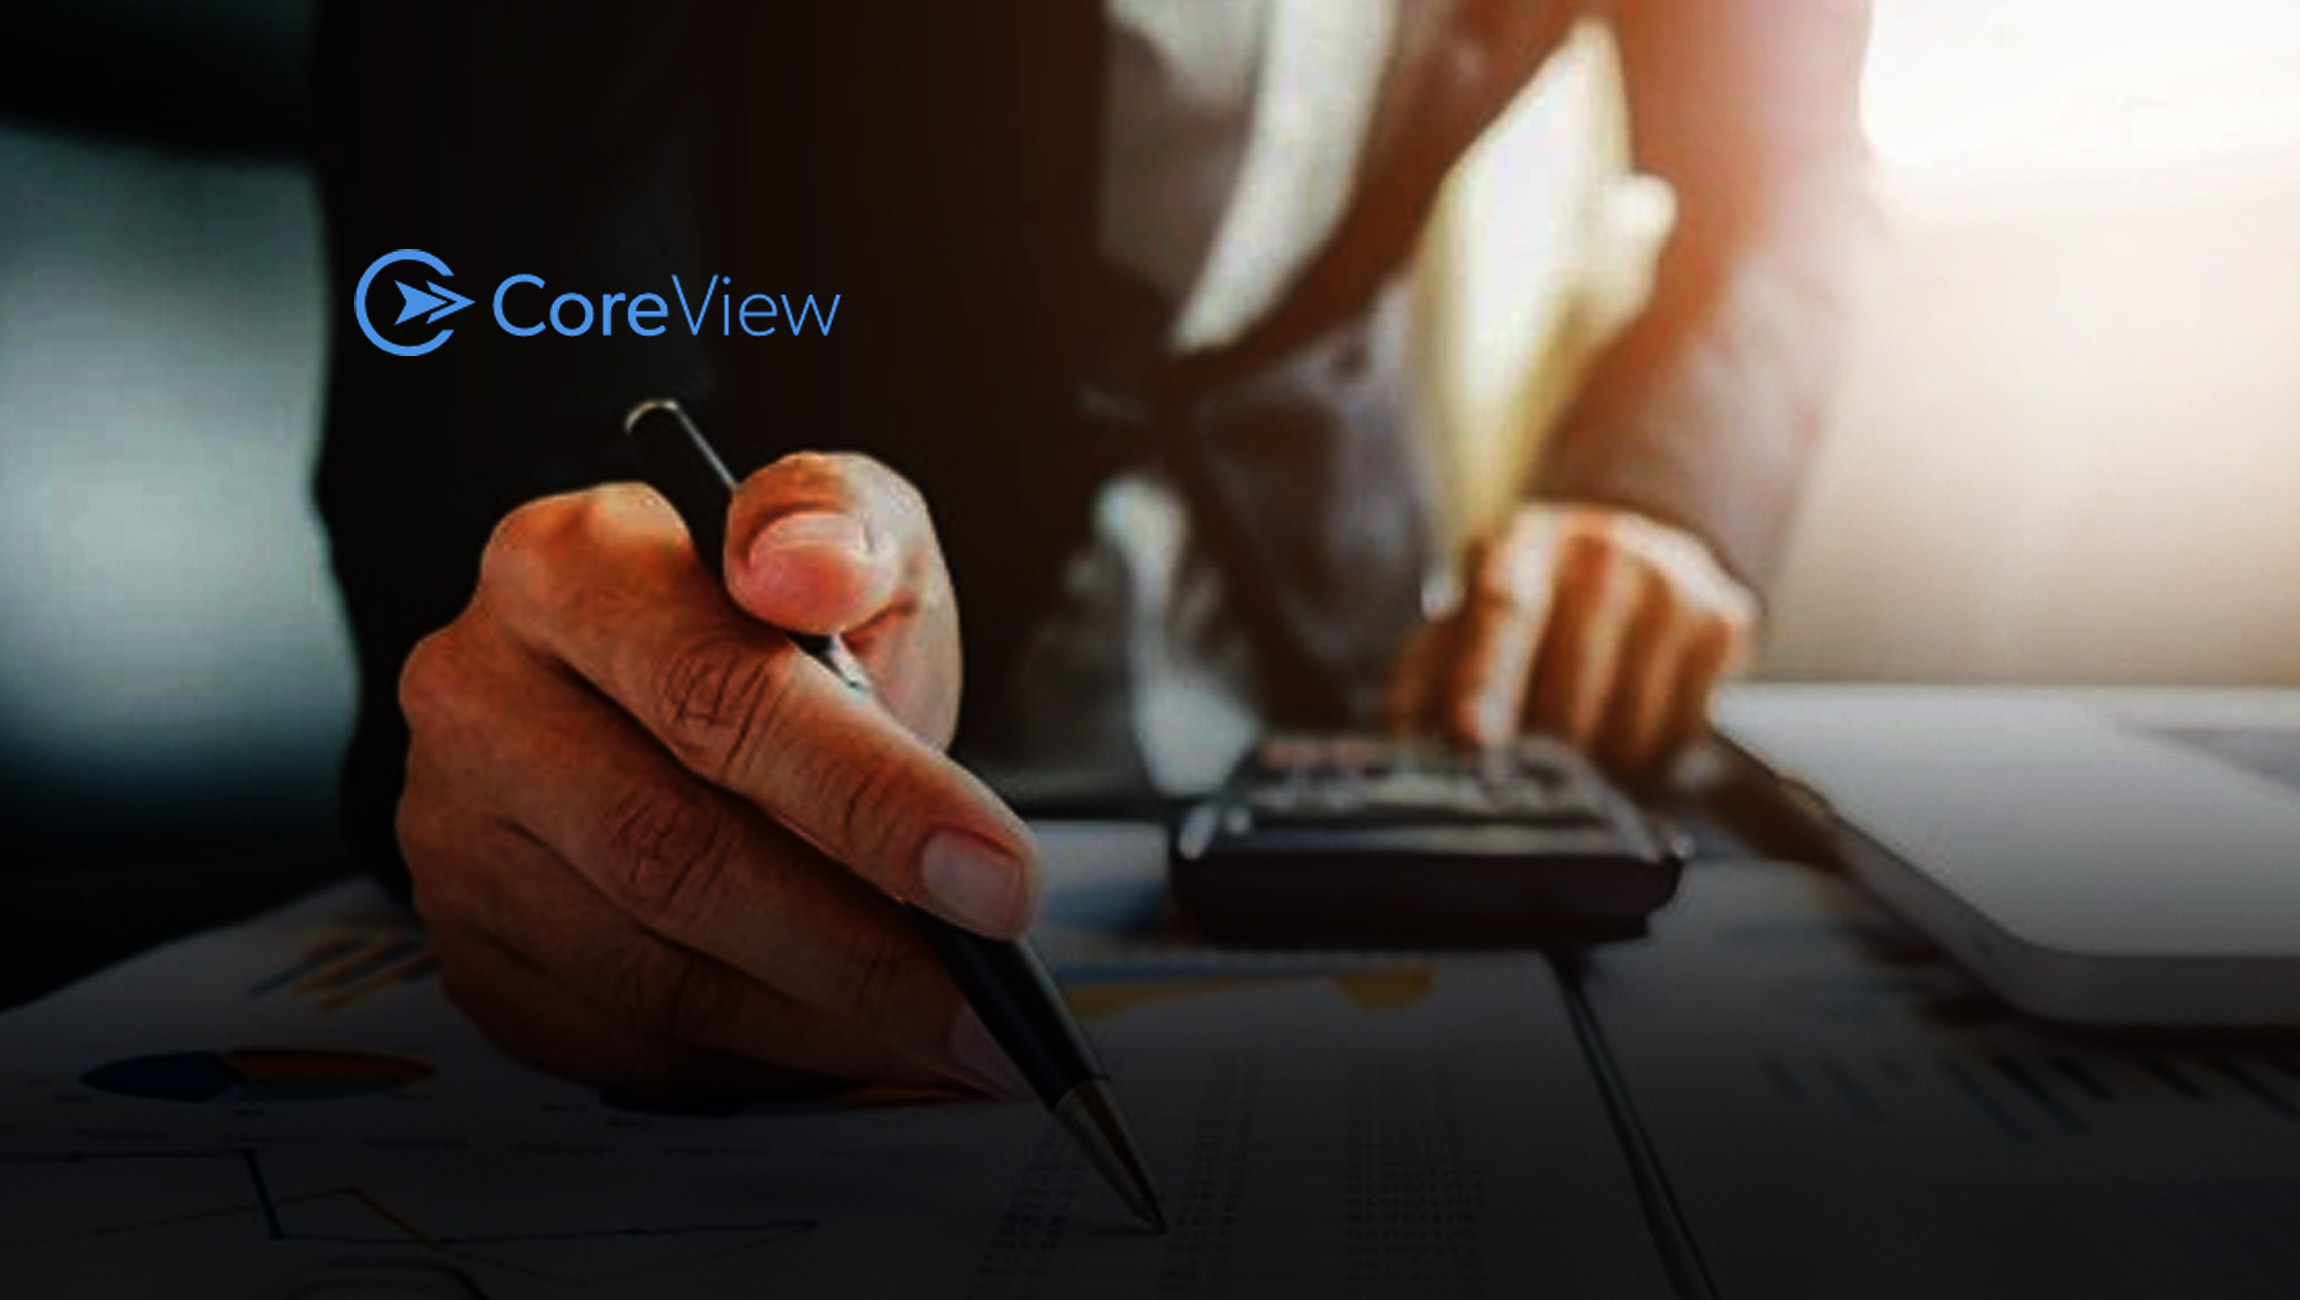 CoreView Names Shawn Lankton as CEO Amid 116% Annual Recurring Revenue Growth